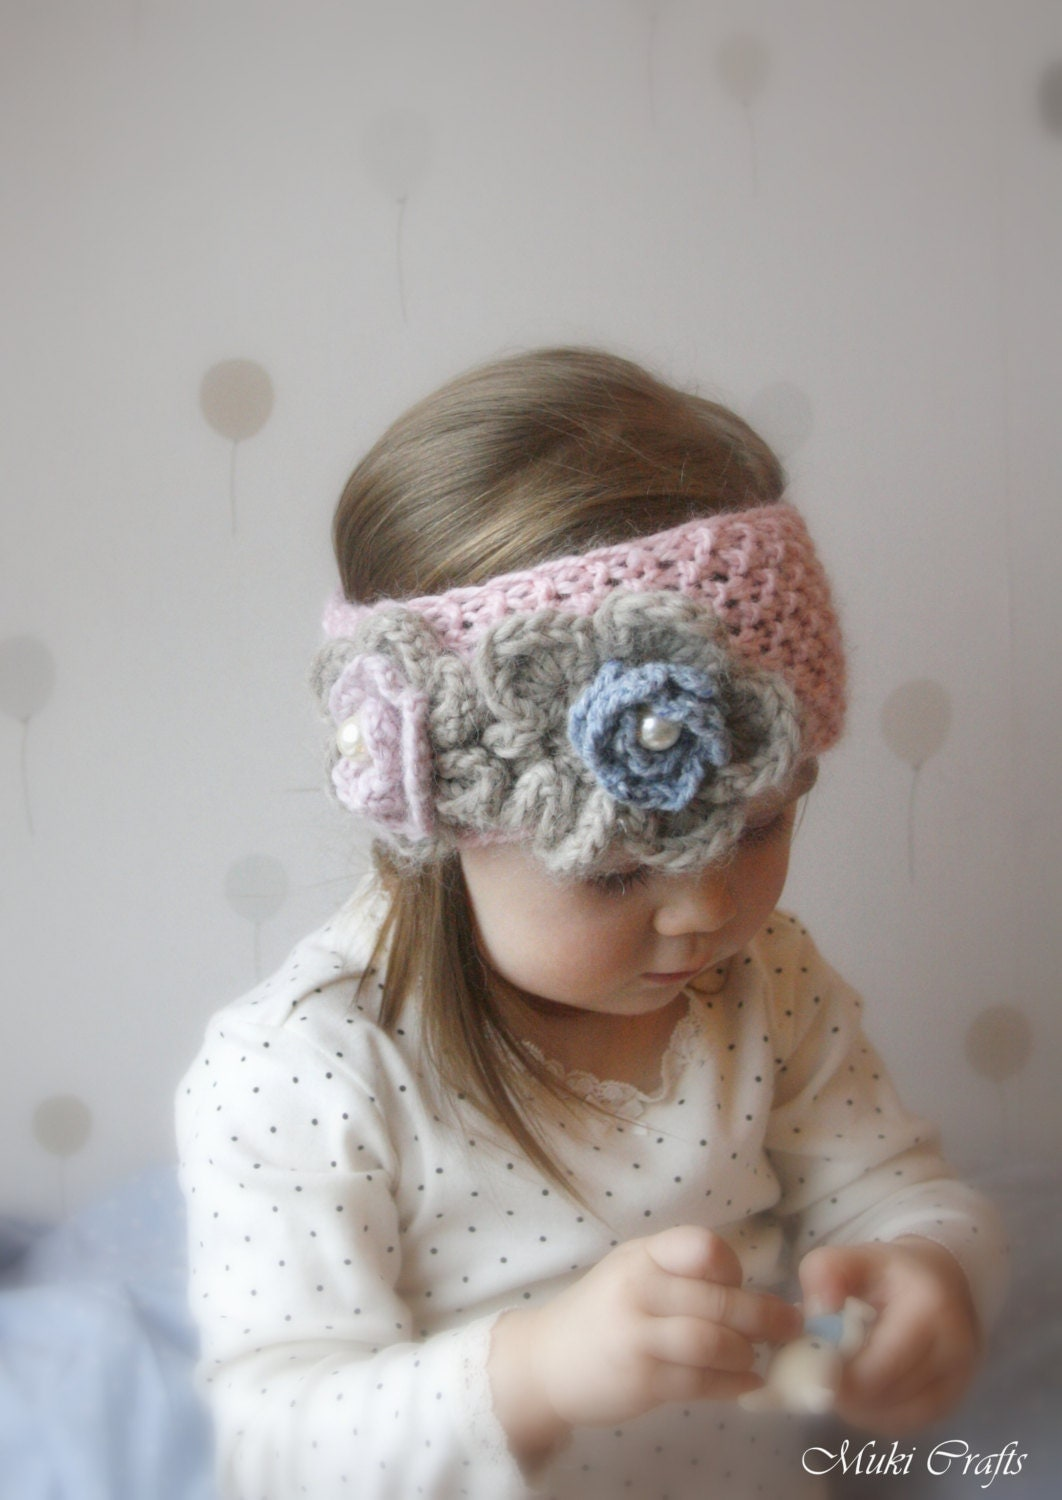 Knit Headband Pattern With Crochet Flower : KNITTING PATTERN simple headband Kendra with crochet flowers